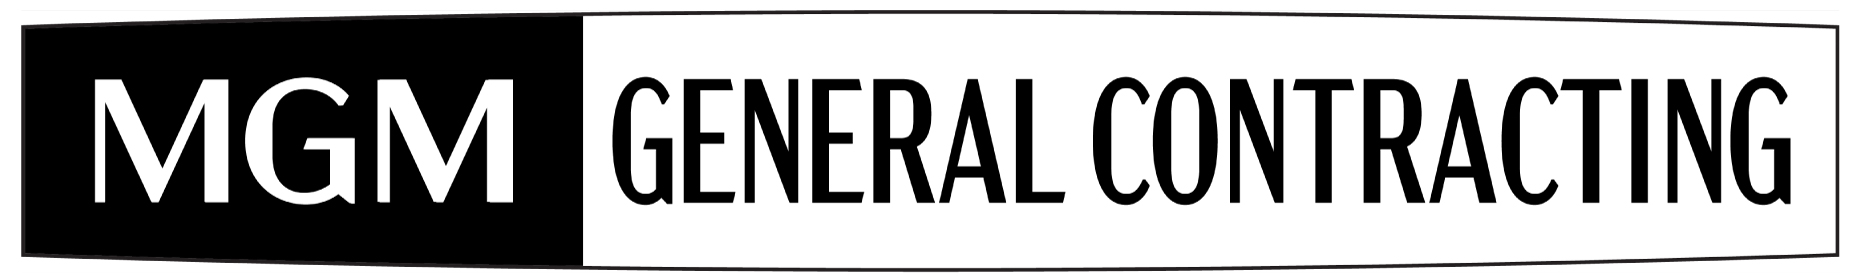 MGM General Contracting-logo